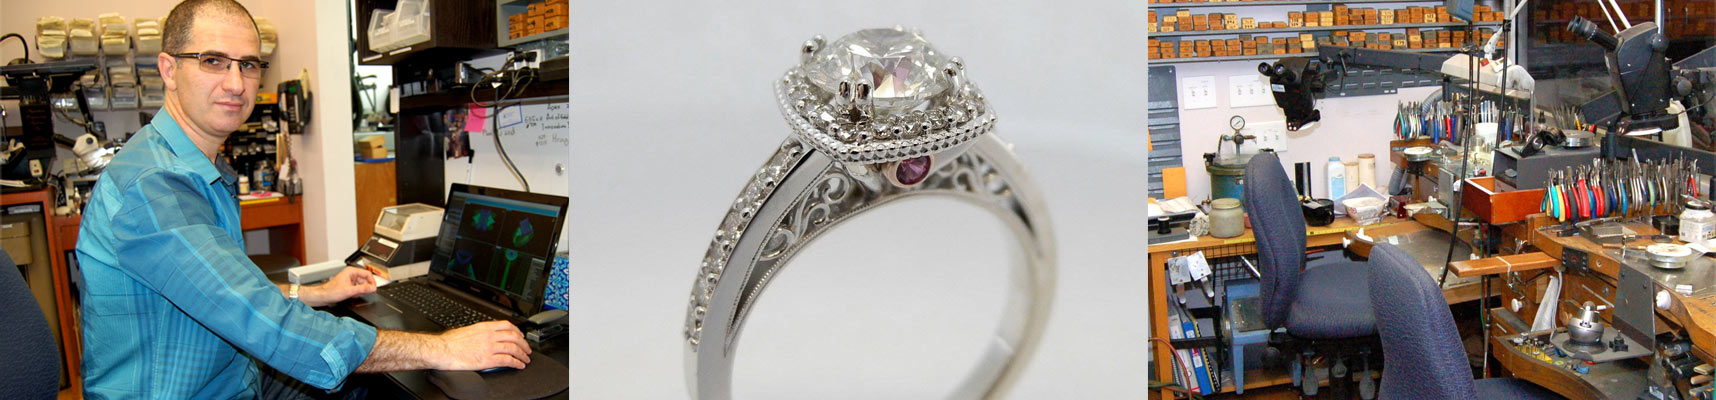 Affinity & Co Jewelers offers custom design services for your engagement rings.